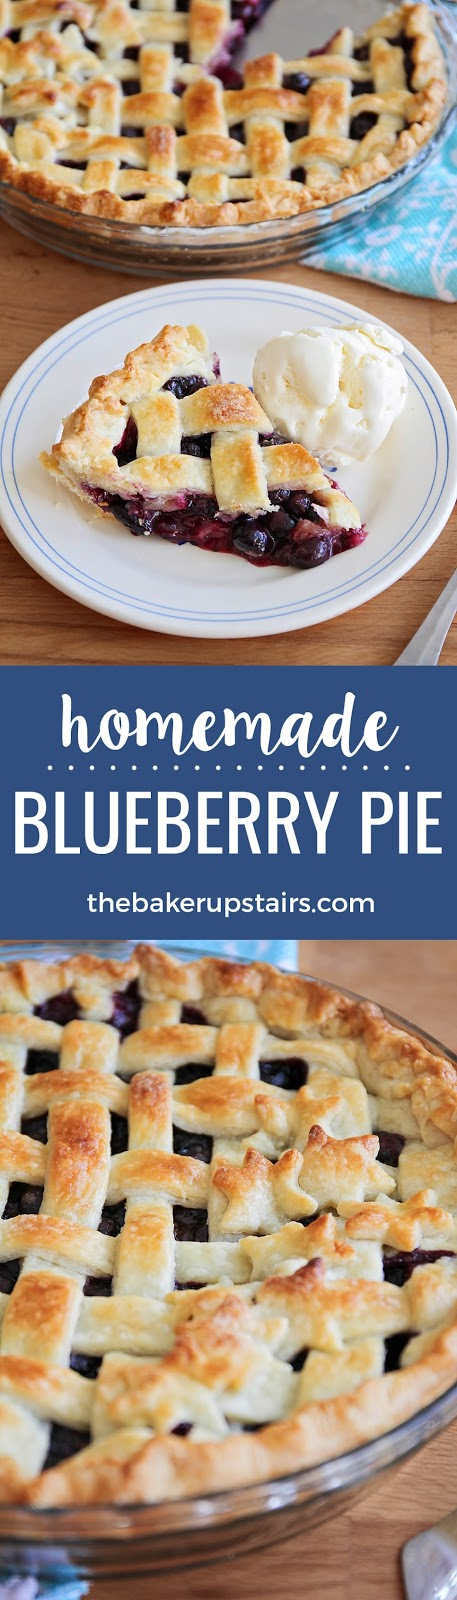 This delicious homemade blueberry pie is so simple and easy to make, you won't believe you made it at home!